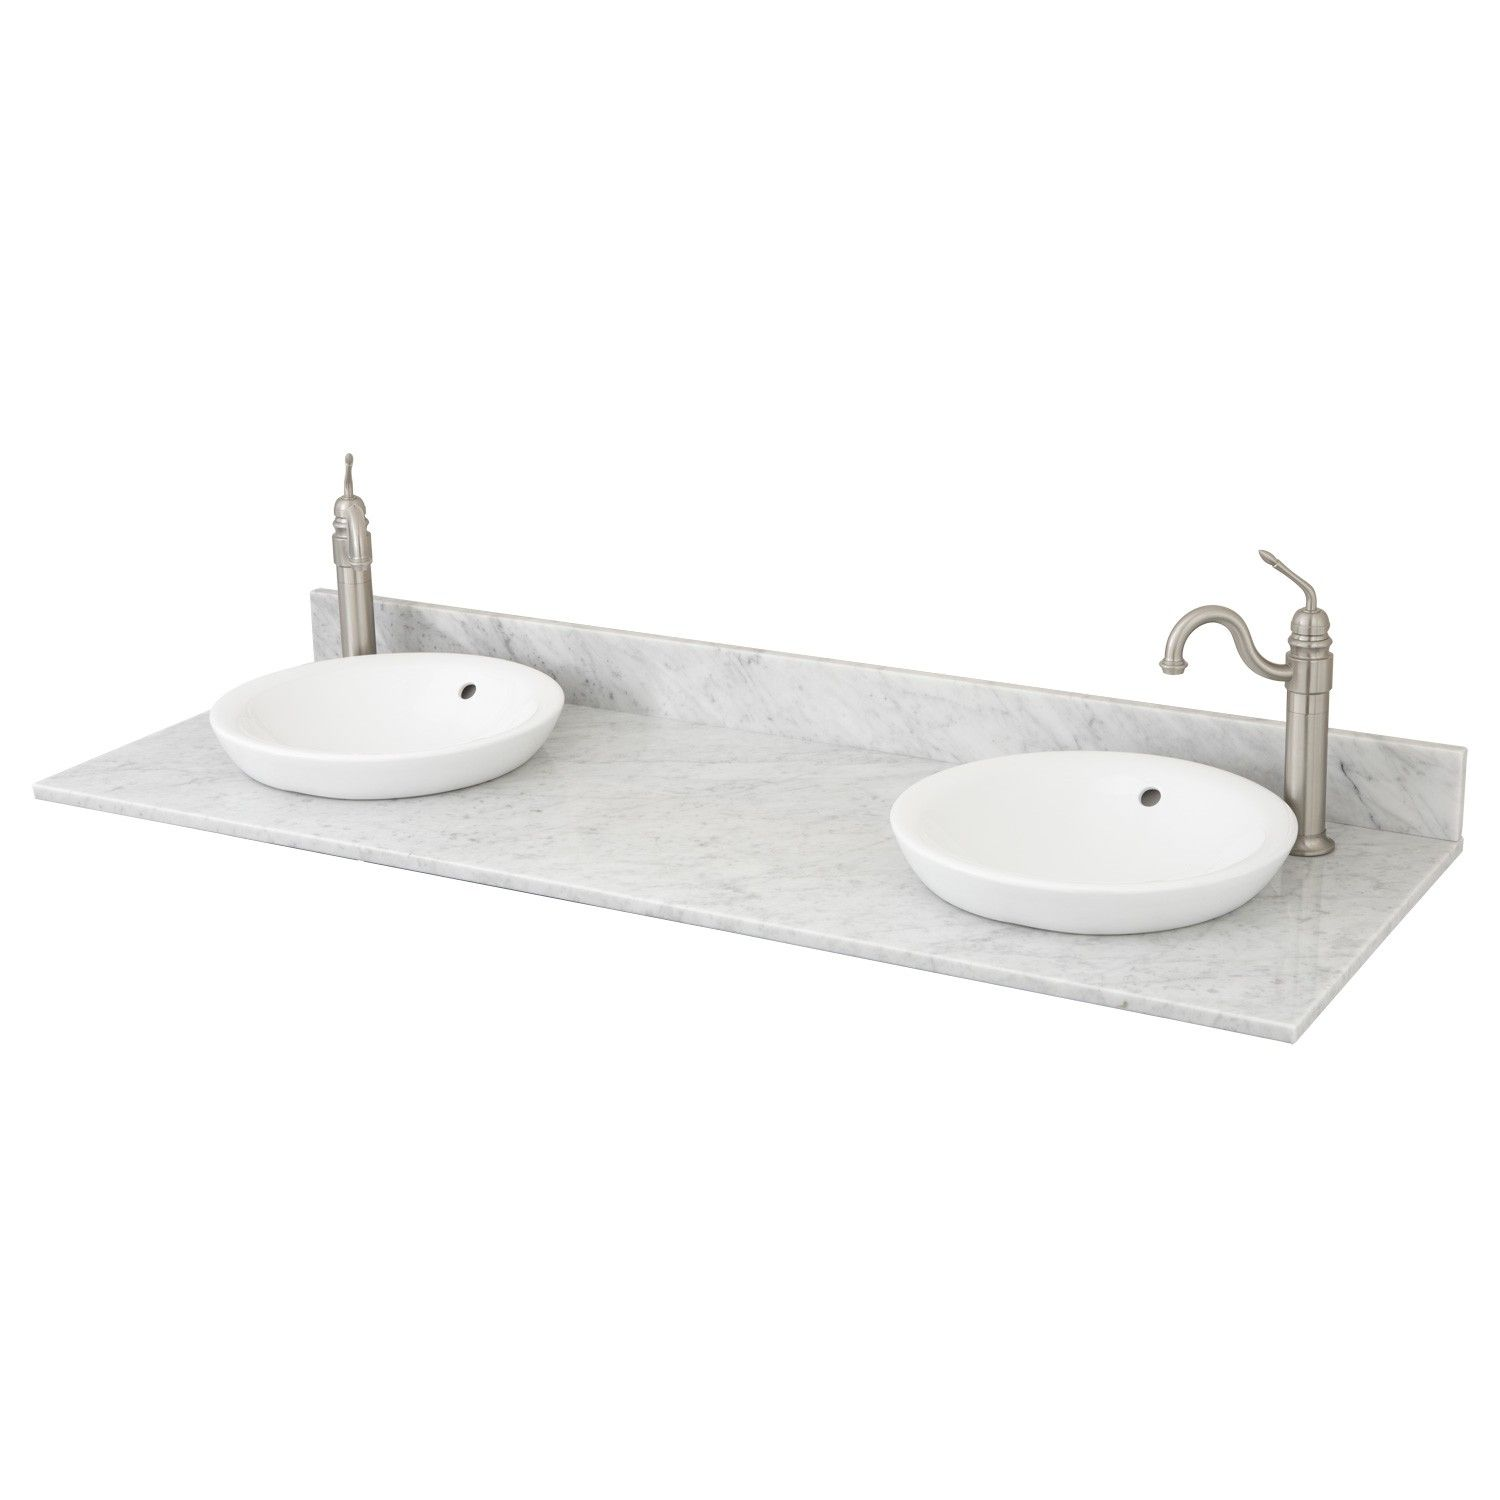 Marble Vanity Top for Double Semi-Recessed Sink - Offset Faucet Drillings -  Bathroom Vanities - Bathroom